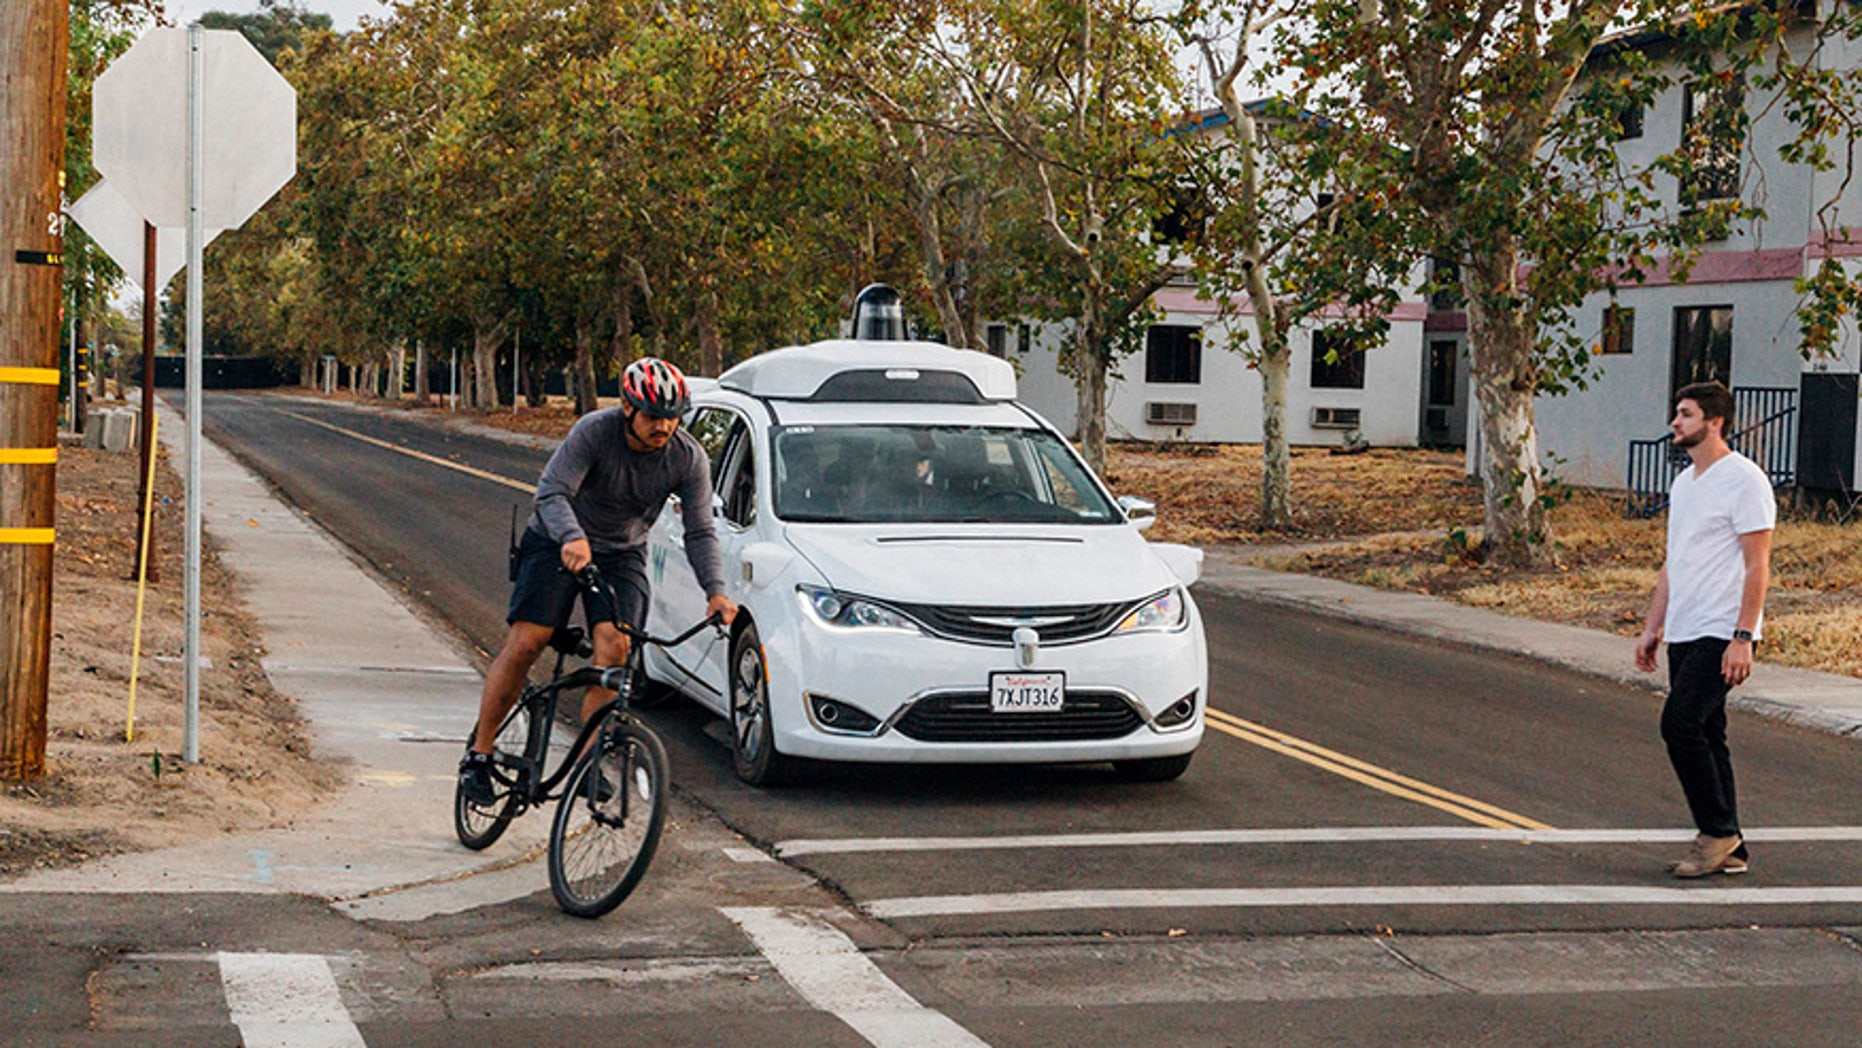 This Sunday, Oct. 29, 2017, photo provided by Waymo shows a Chrysler Pacifica minivan equipped with Waymo's self-driving car technology, being tested with the company's employees as a biker and a pedestrian at Waymo's facility in Atwater, Calif. Waymo, hatched from a Google project started eight years ago, showed off its progress Monday during a rare peek at a closely guarded testing facility located 120 miles southeast of San Francisco where its robots complete their equivalent to driver's education. (Julia Wang/Waymo via AP)